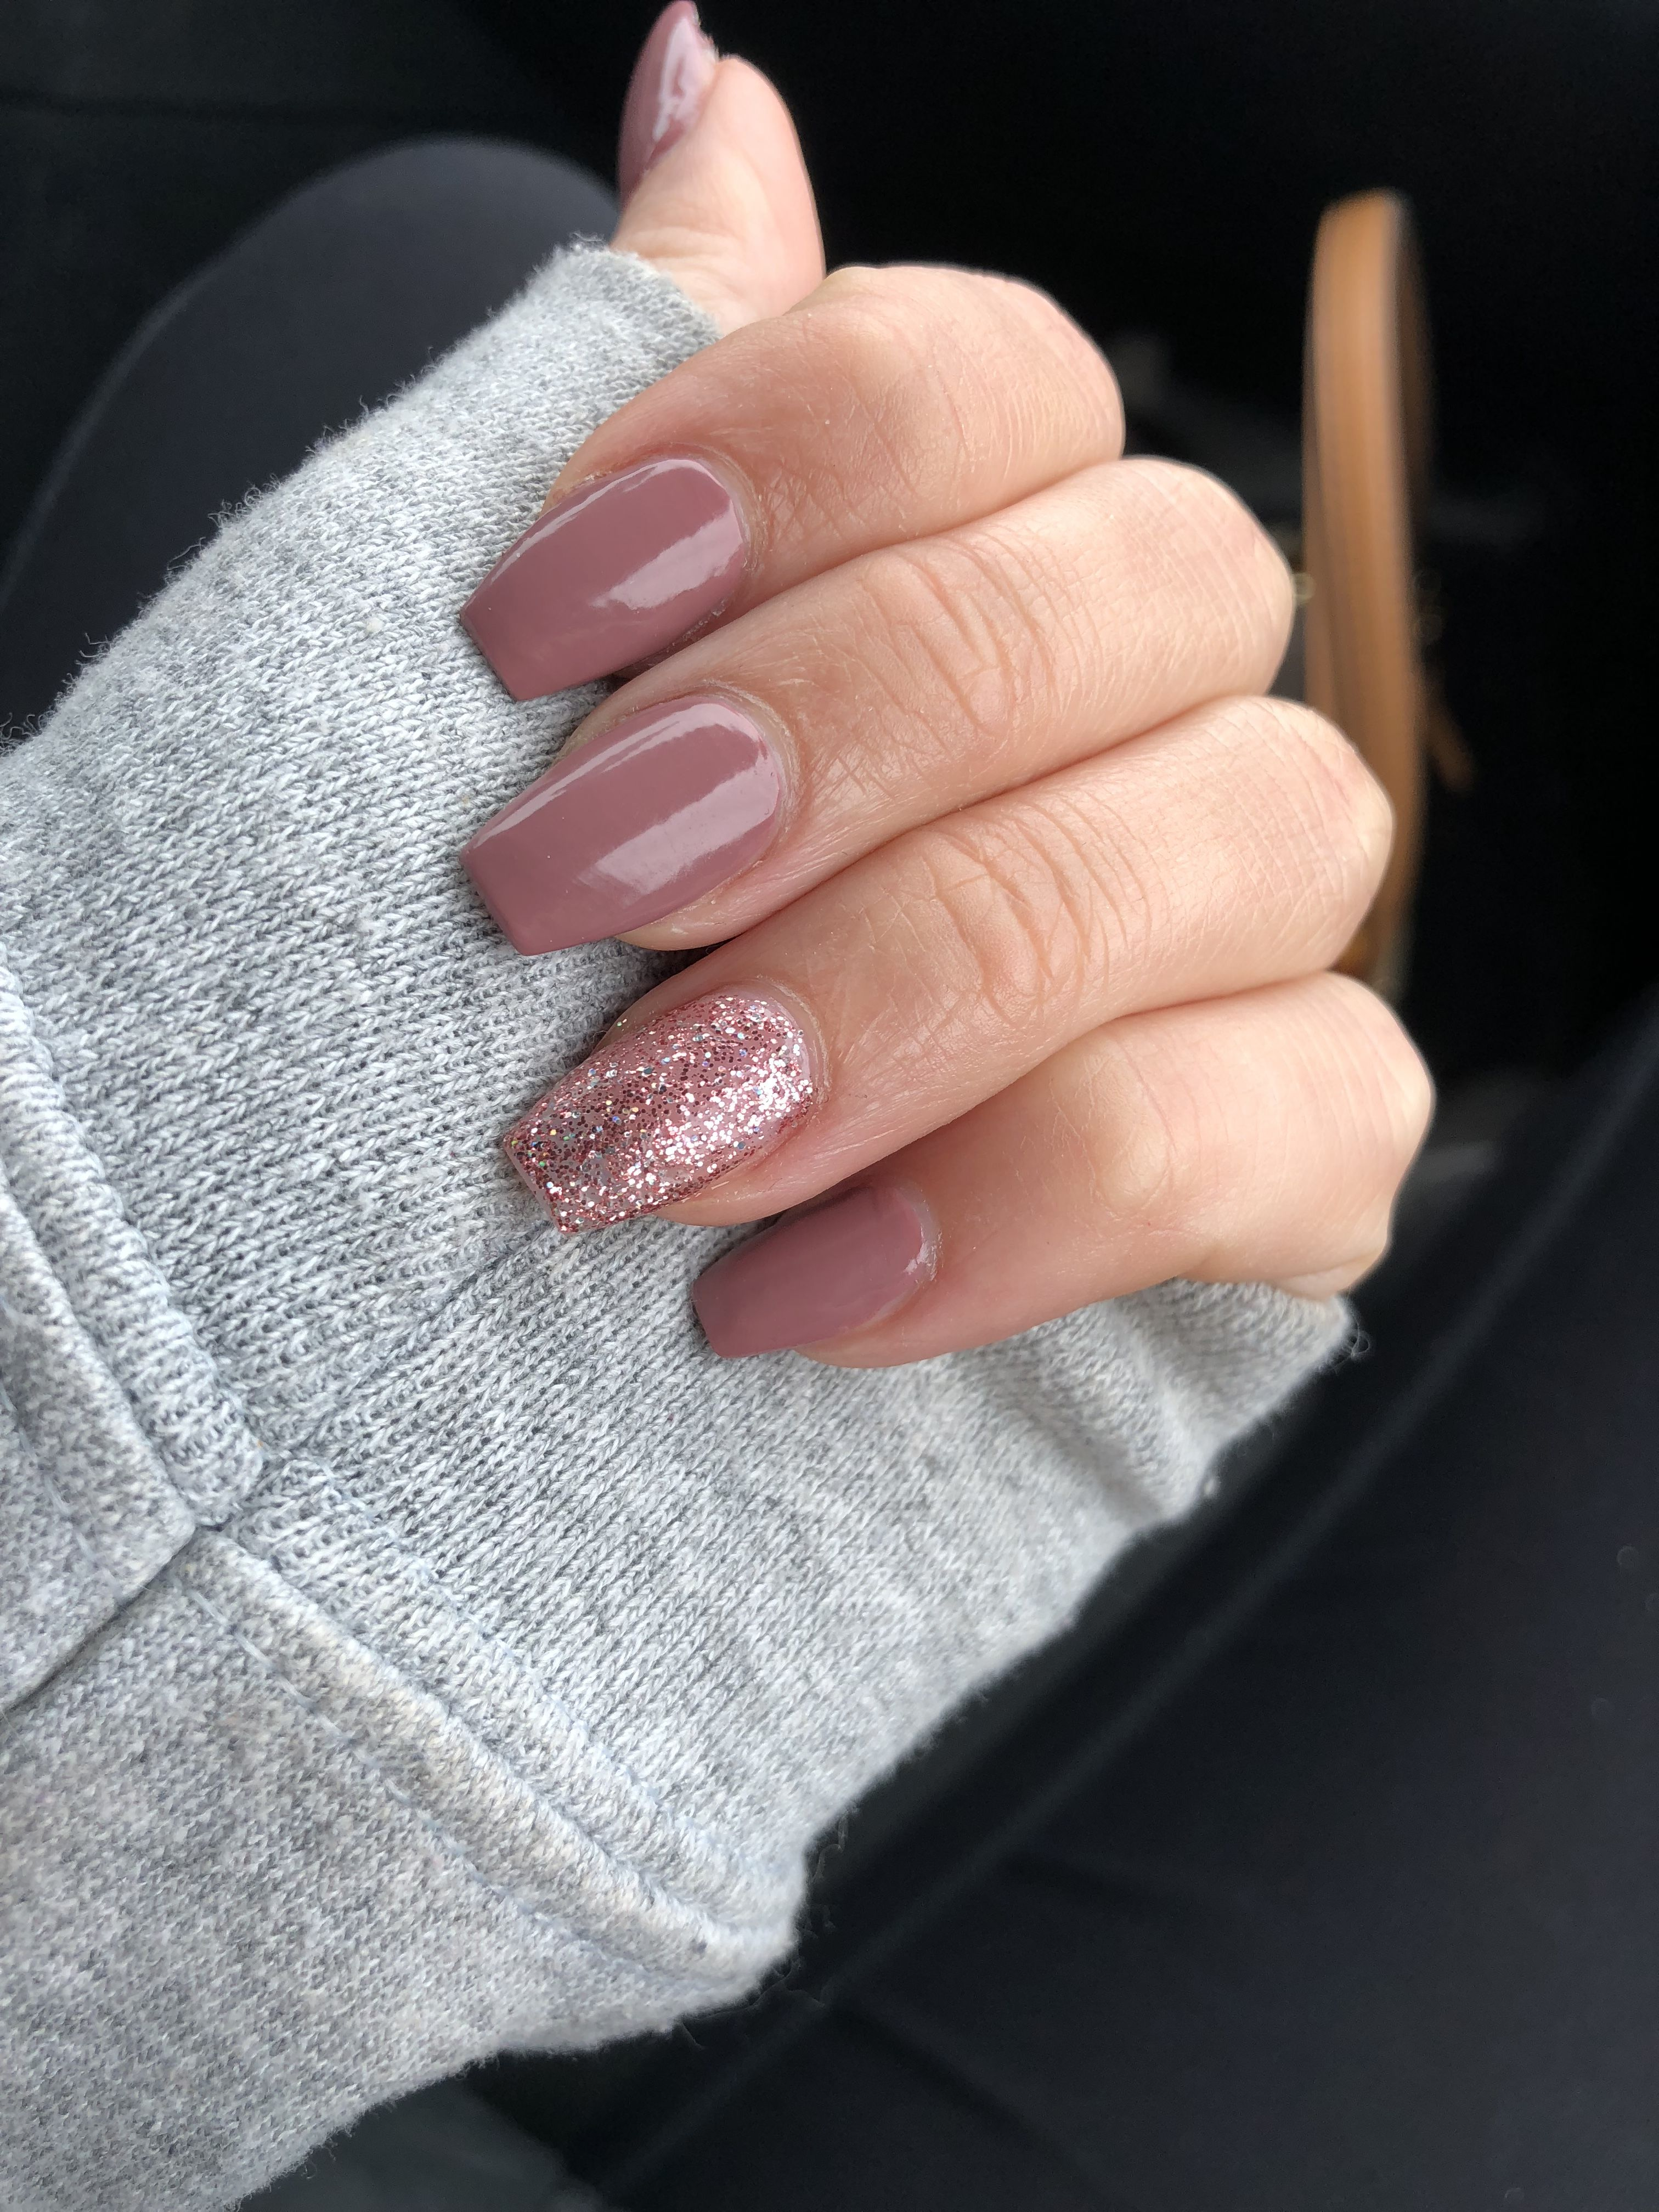 Acrylic coffin Nails Mauve pink glitter | Nails | Pinterest | Coffin ...